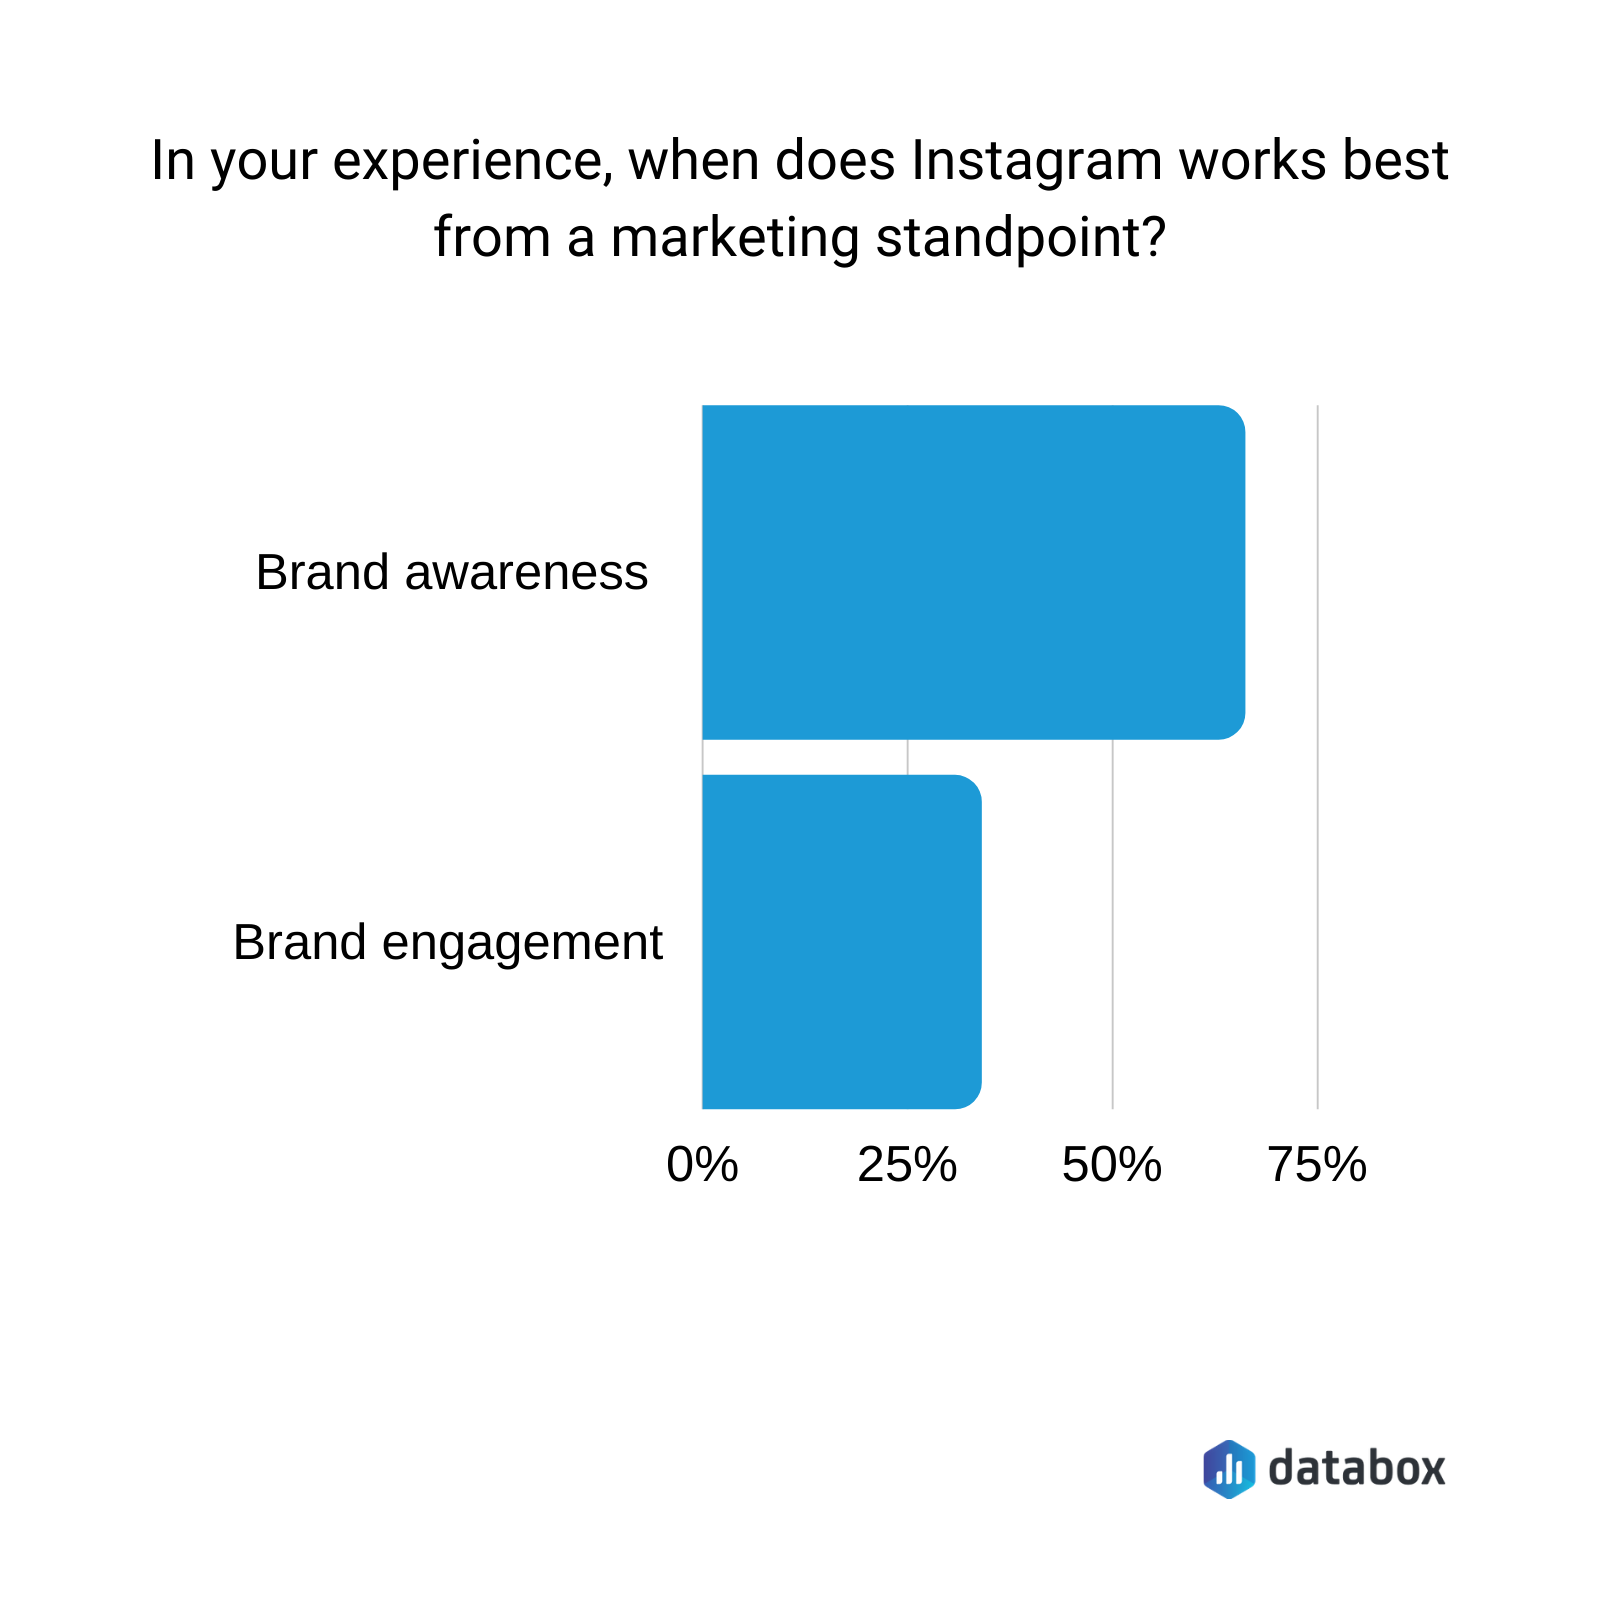 In your experience, when does Instagram work best from a marketing standpoint?